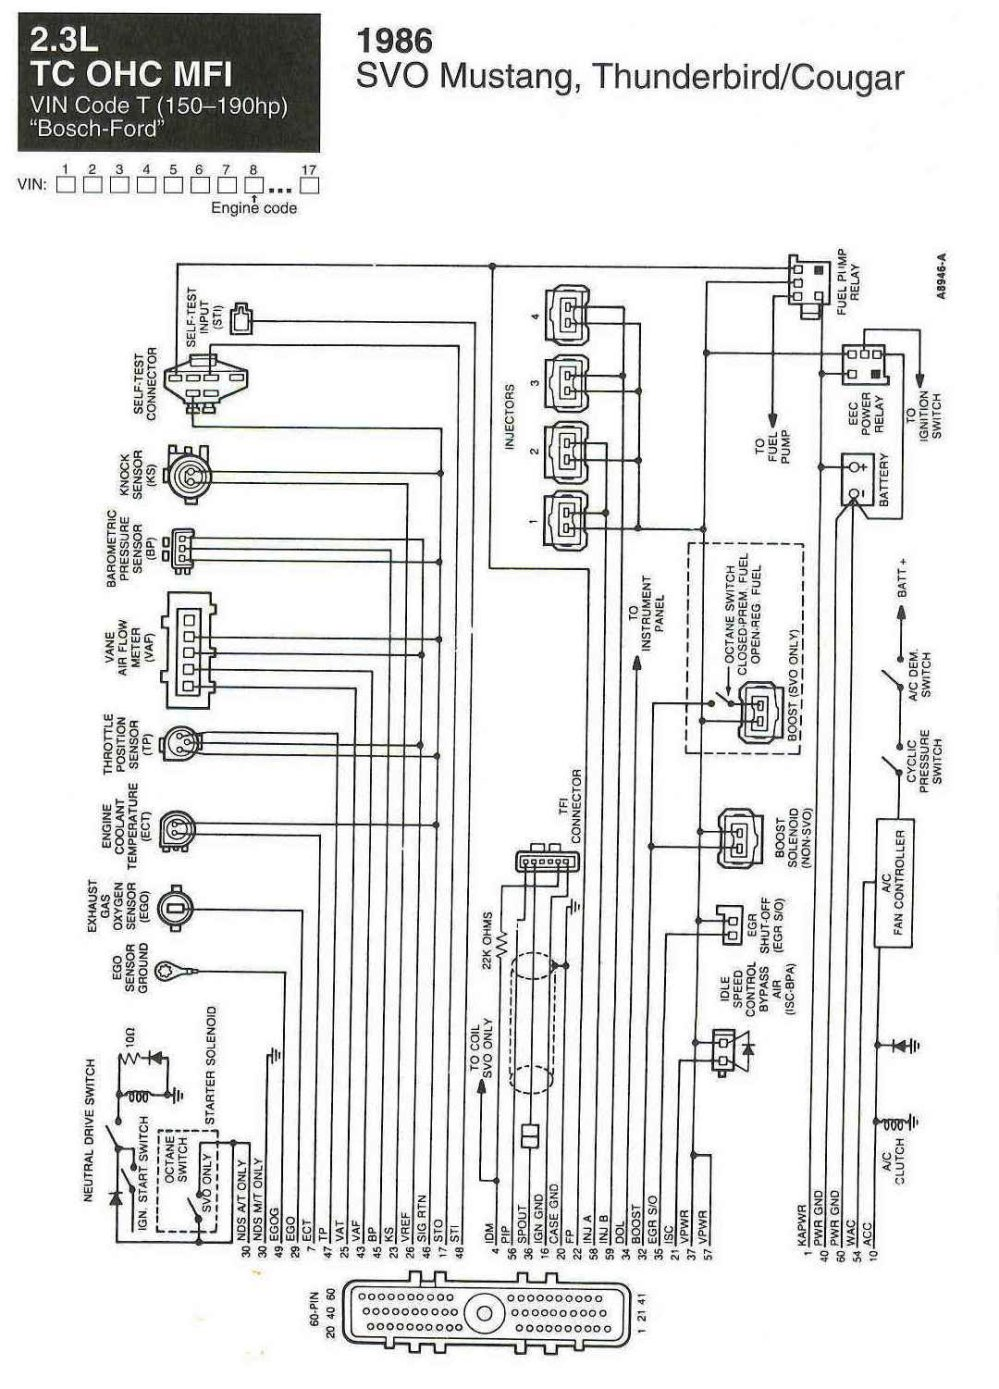 medium resolution of mustang alternator wiring diagram mustang alternator wiring diagram dodge alternator wiring what color goes where